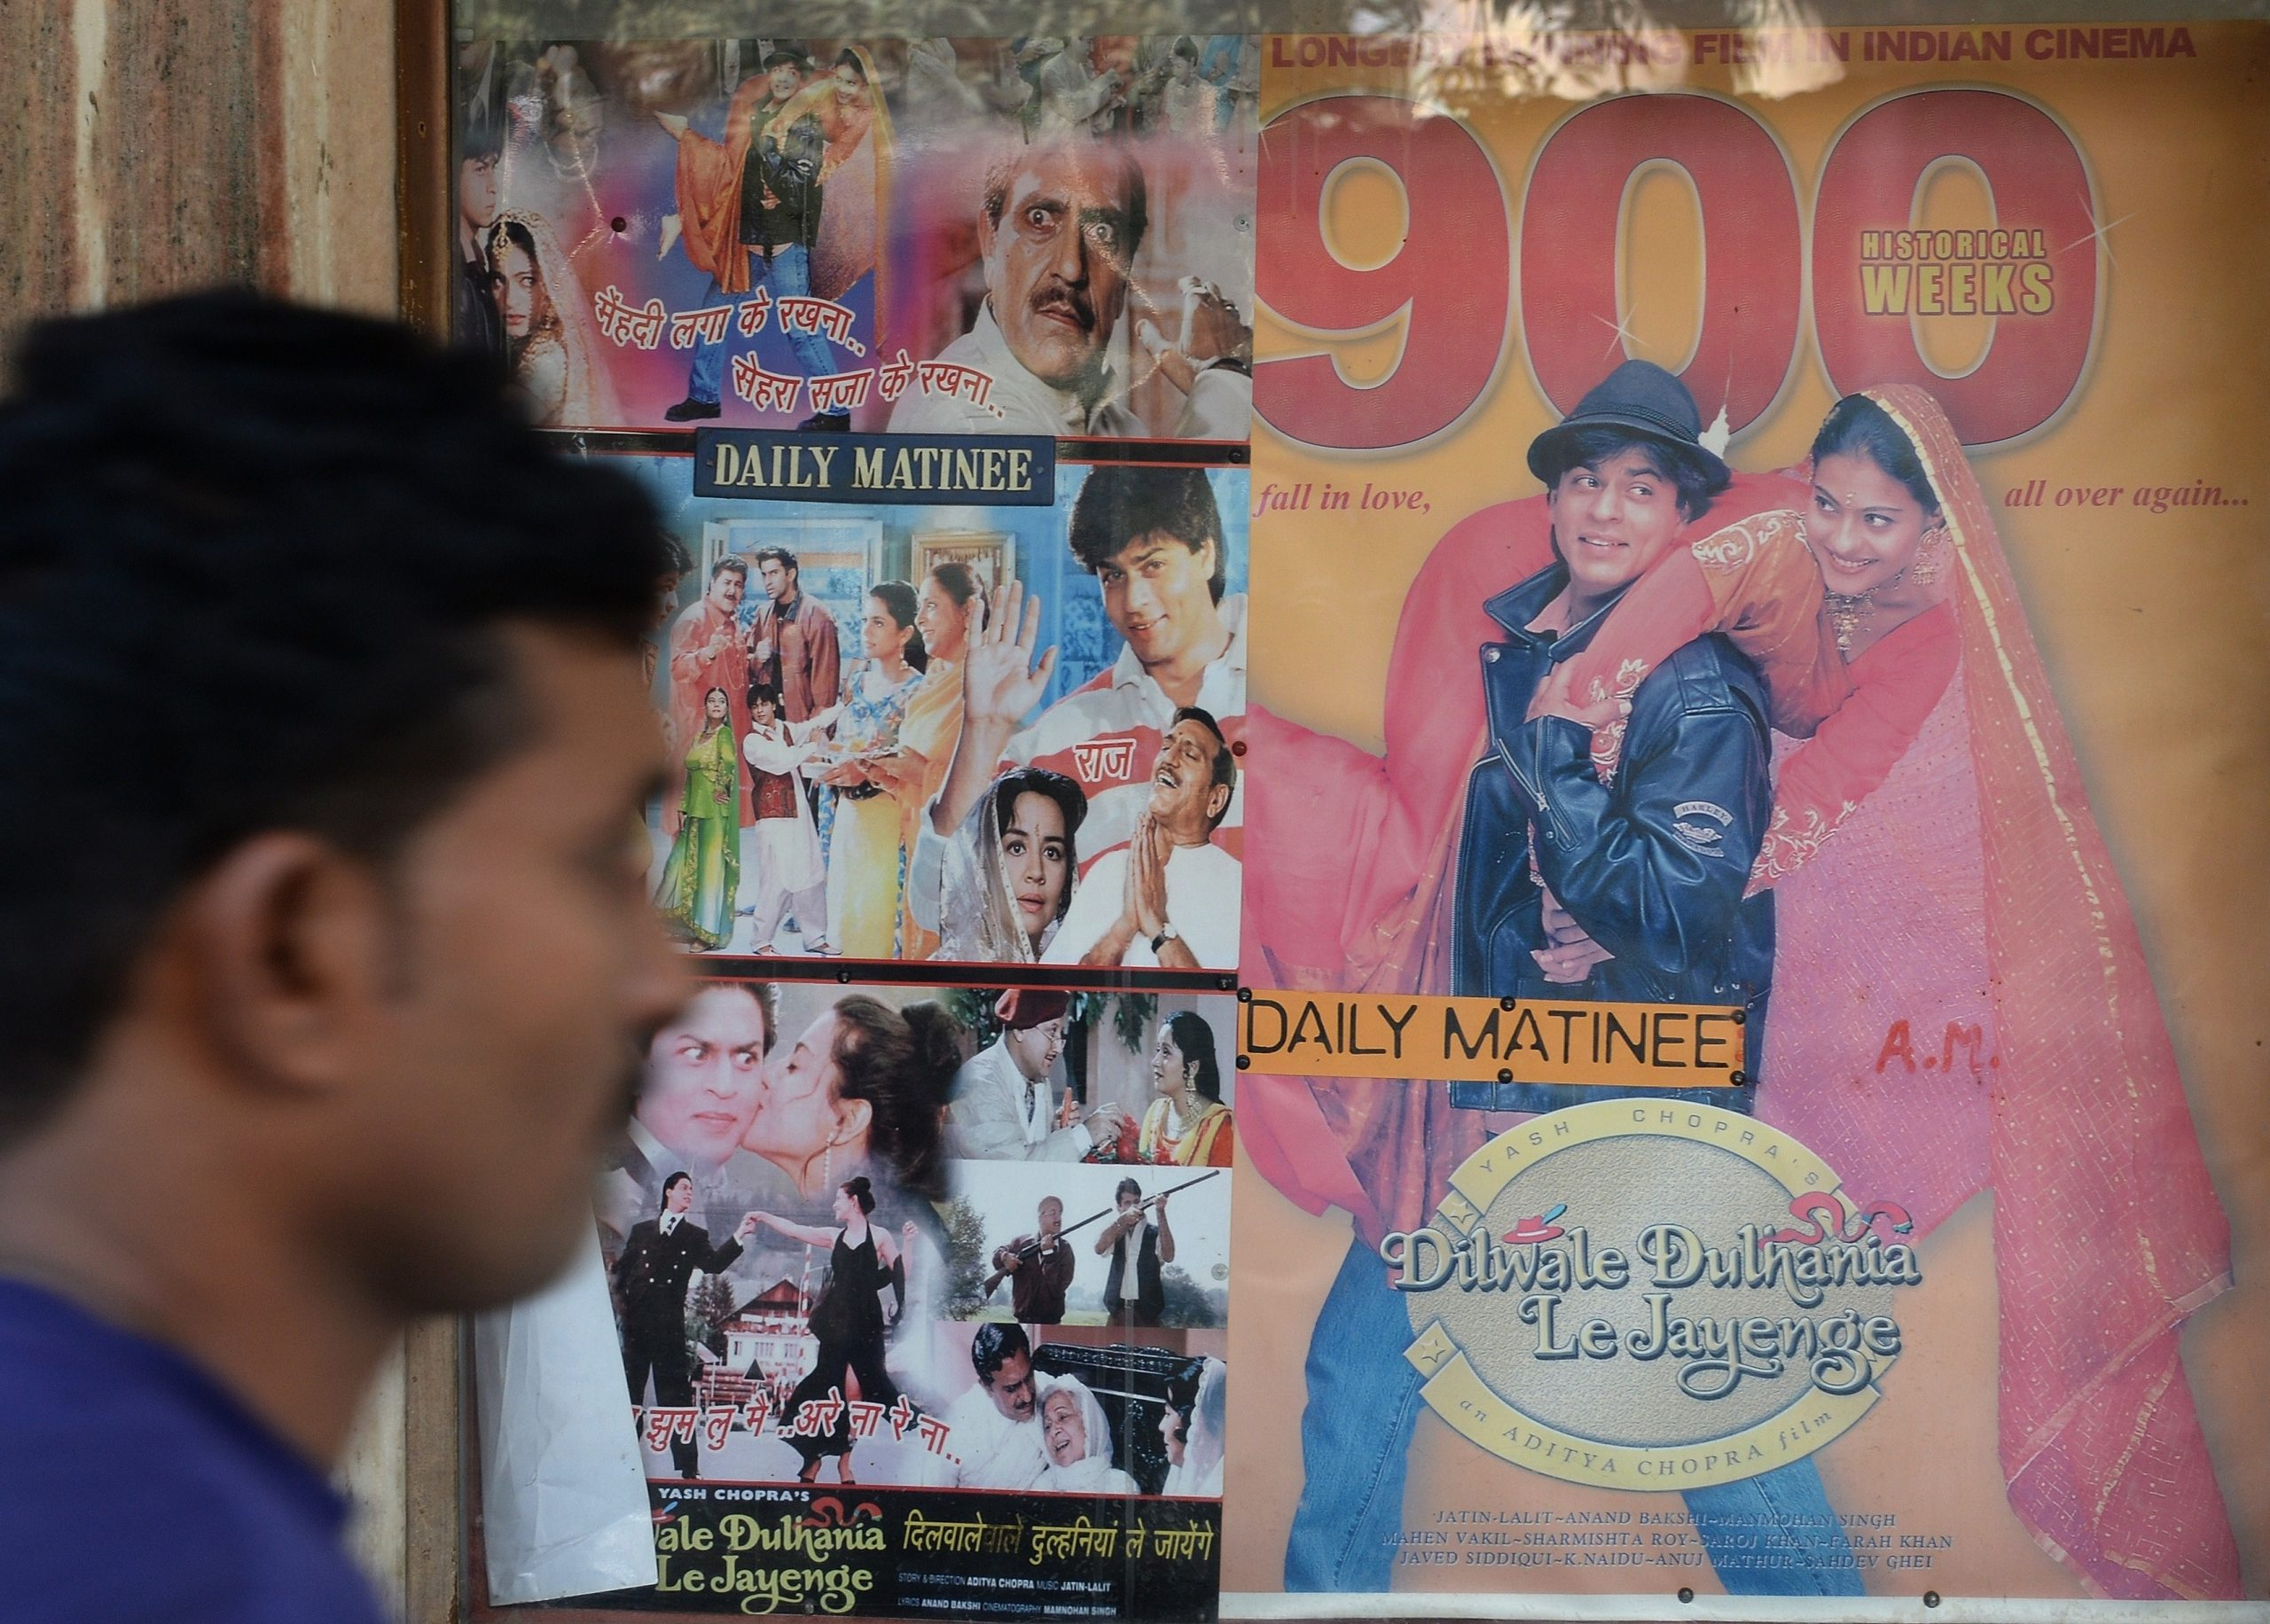 """TO GO WITH India-entertainment-Bollywood-cinema,FOCUS by Aditya PHATAK In this photograph taken on December 5, 2014, an Indian cinemagoer walks past a poster of a screening of the popular Bollywood Hindi film 'Dilwale Dulhania Le Jayenge' (The Brave hearted Will Take The Bride Away) at the Maratha Mandir movie theatre in Mumbai.  The 1995 Bollywood love flick titled Dilwale Dulhaniya Le Jayenge (The Brave Hearted Will Take Away the Bride) is now the longest running movie in Indian cinema history. """"DDLJ"""", as the movie is commonly known in India, is set to clock a successful run of 1000 weeks on December 12.   AFP PHOTO / INDRANIL MUKHERJEE        (Photo credit should read INDRANIL MUKHERJEE/AFP via Getty Images)"""